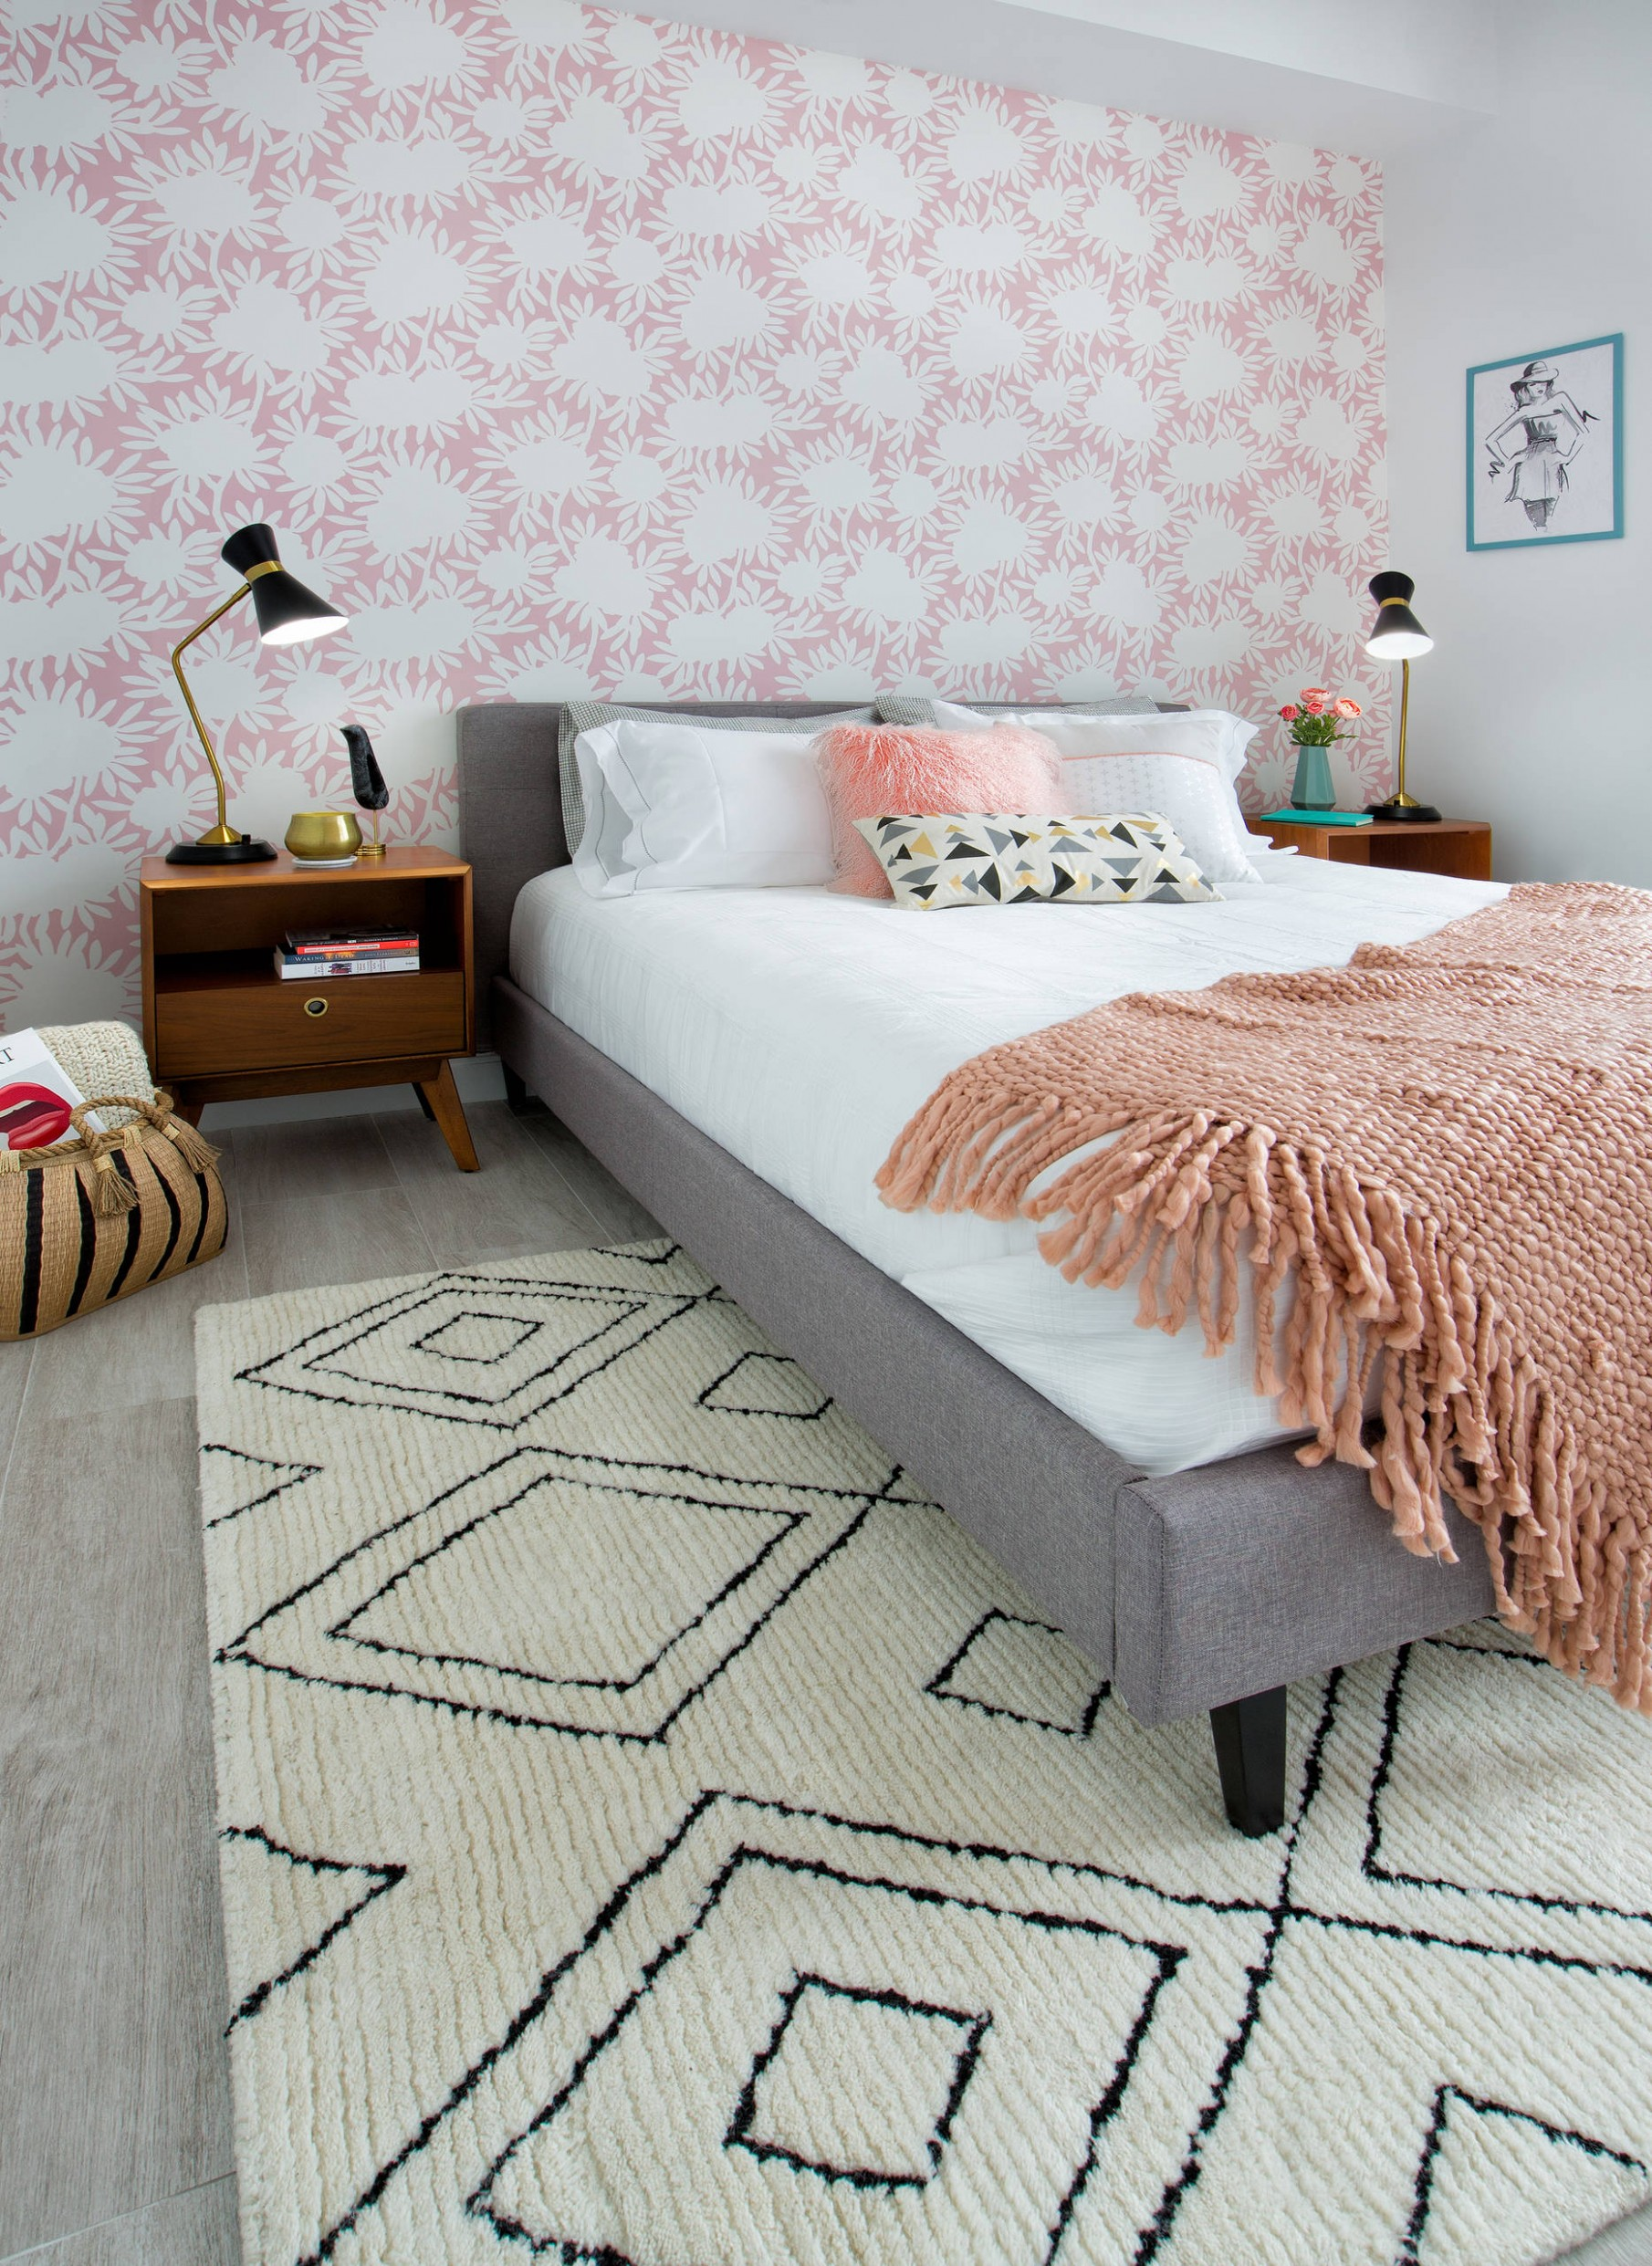 Play With Wallpaper - Small Bedroom Design Ideas - Tiny Bedroom Ideas - Bedroom Ideas Wallpaper